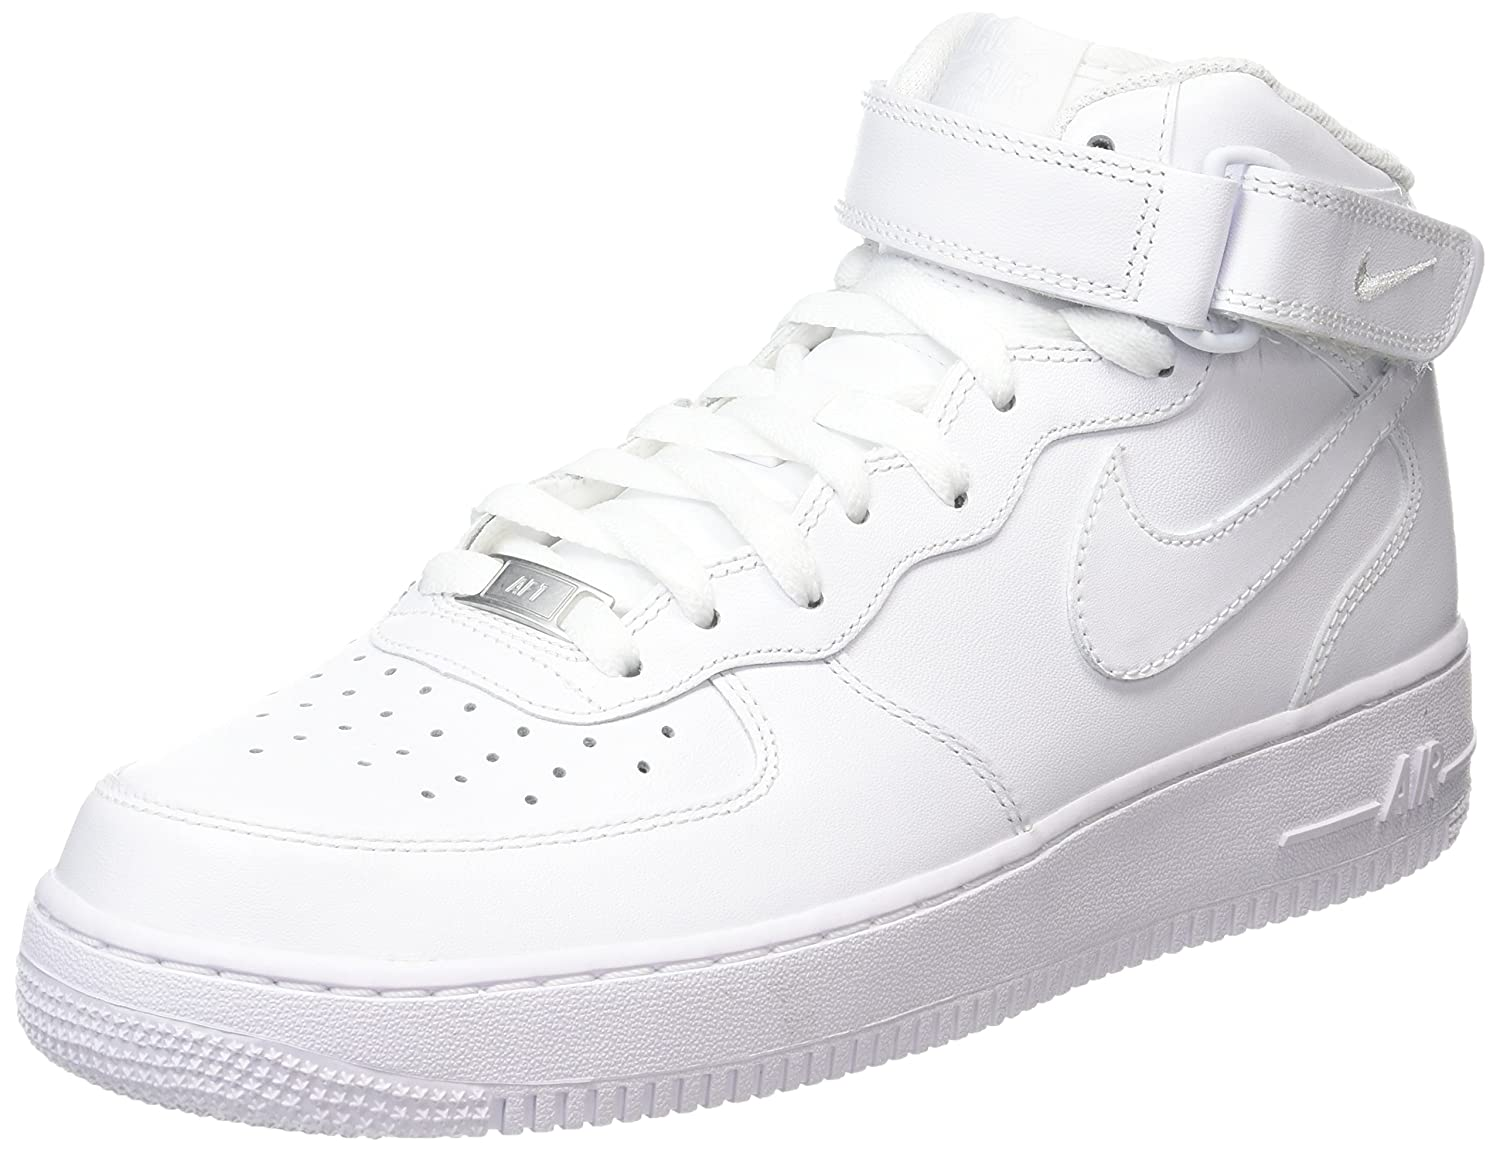 Nike Wmns Air Force 1 Mid '07 Le - Zapatillas para Mujer 38.5 EU|Blanco (White 100)